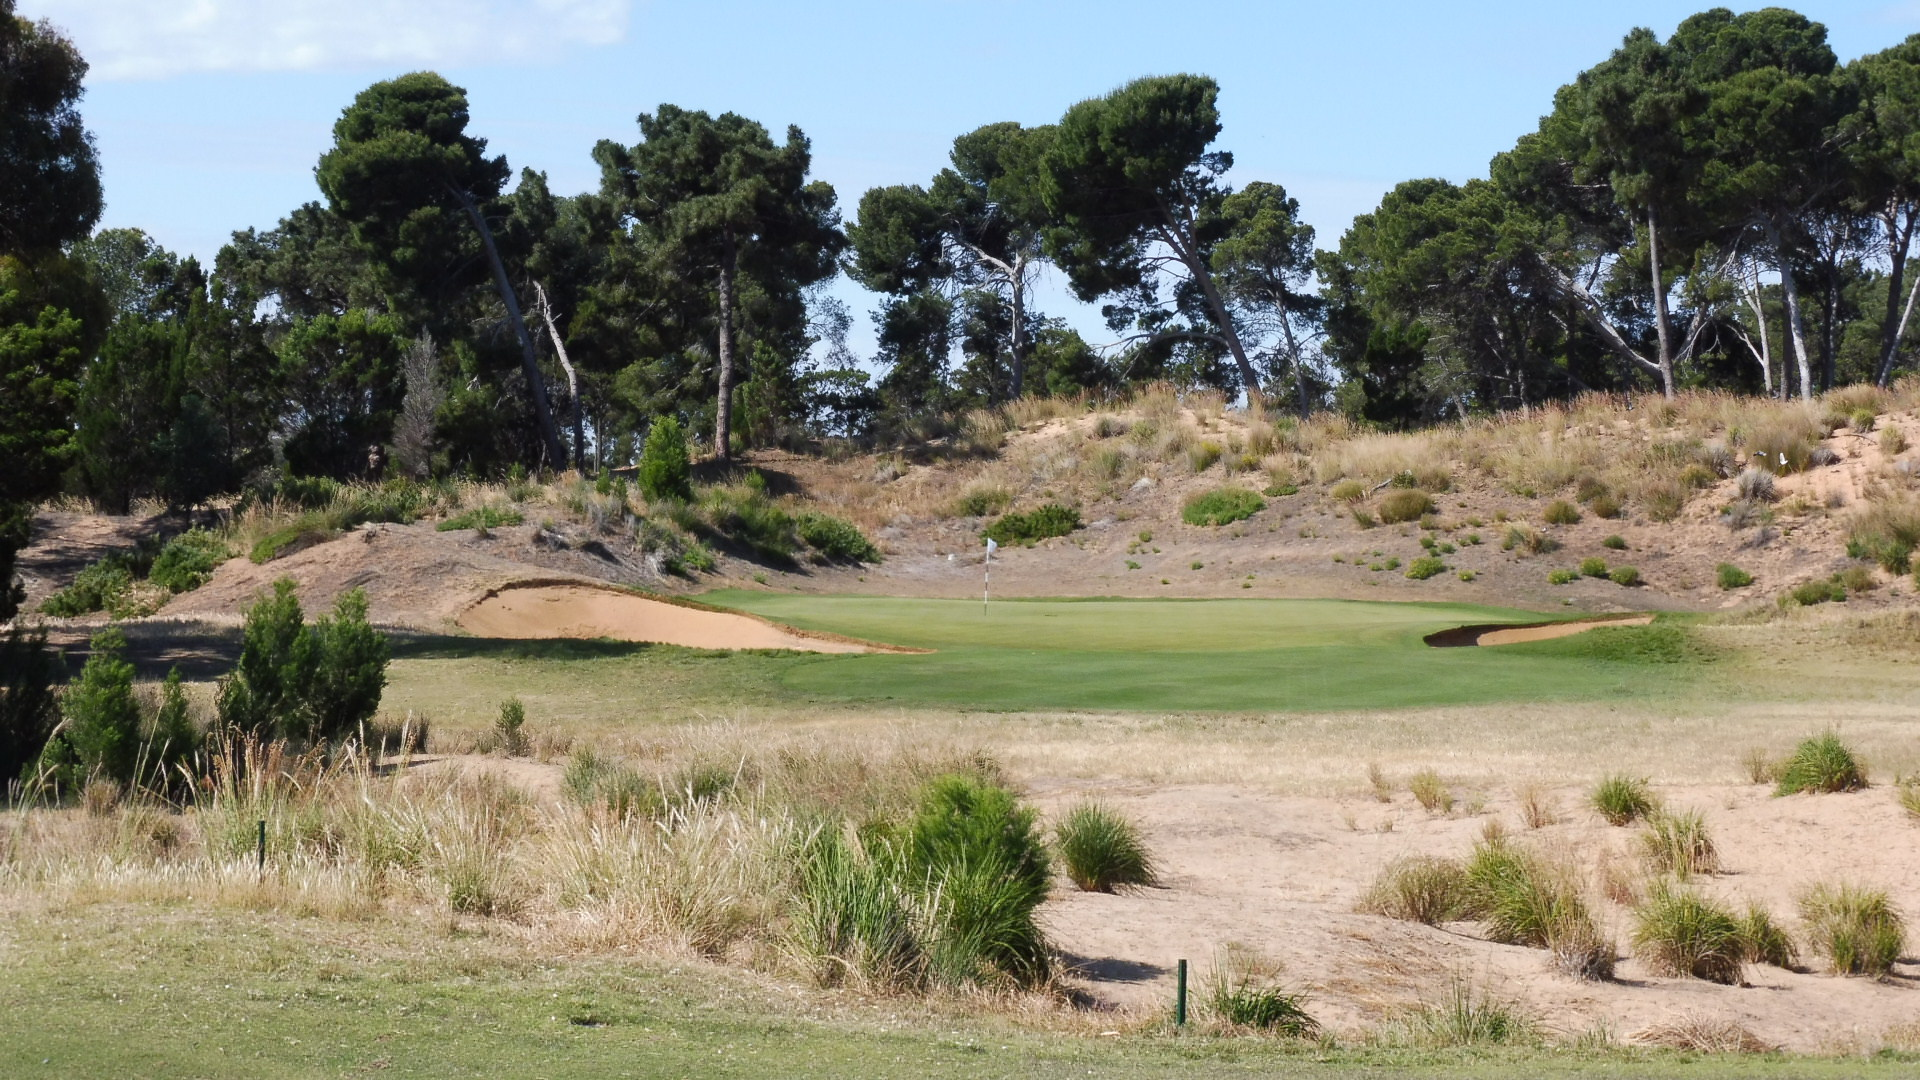 The 11th fairway at Royal Adelaide Golf Club